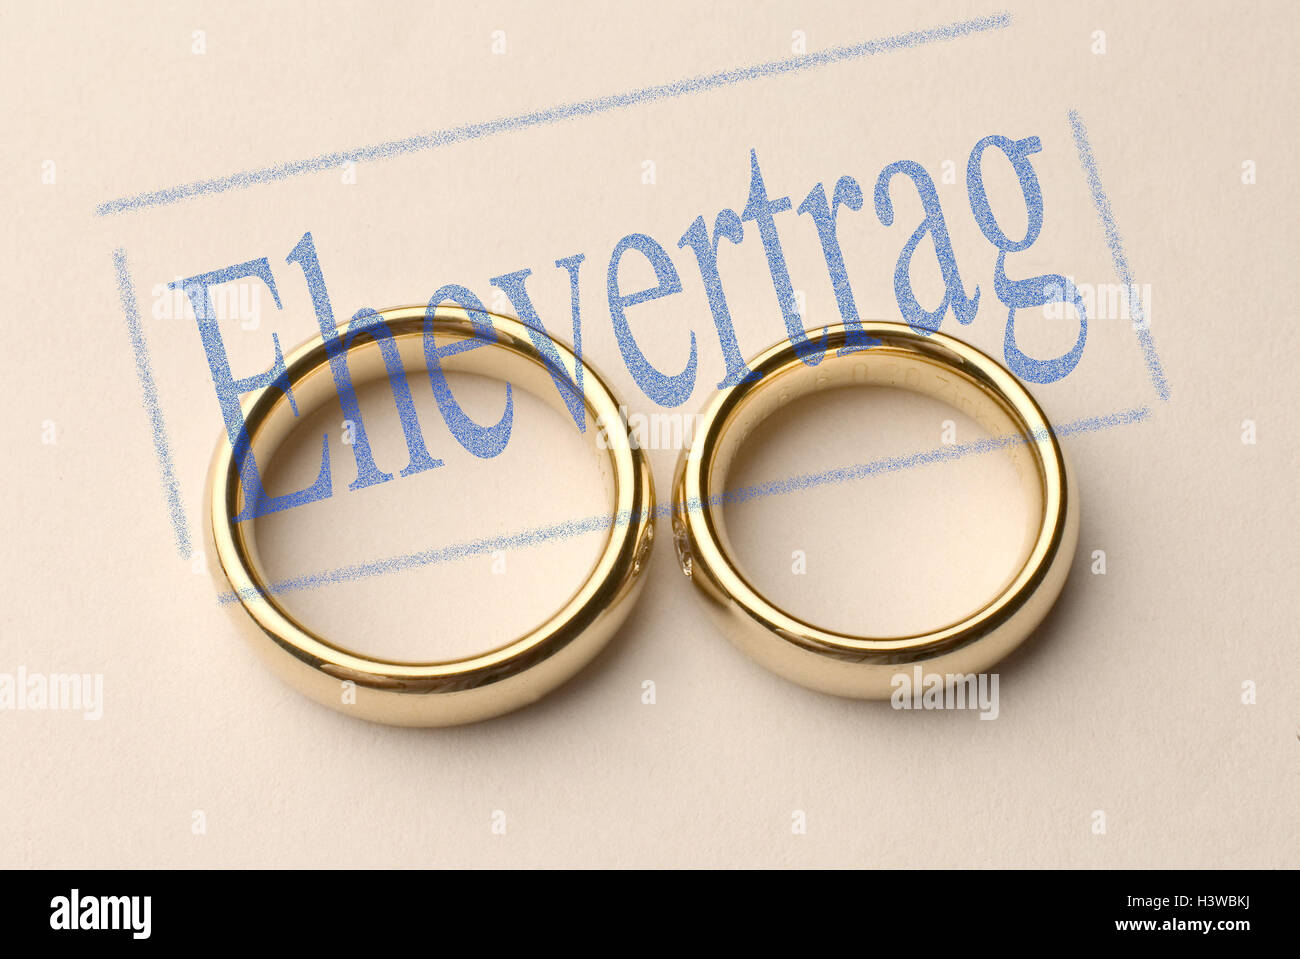 Wedding rings stamps marriage contract rings wedding rings gold